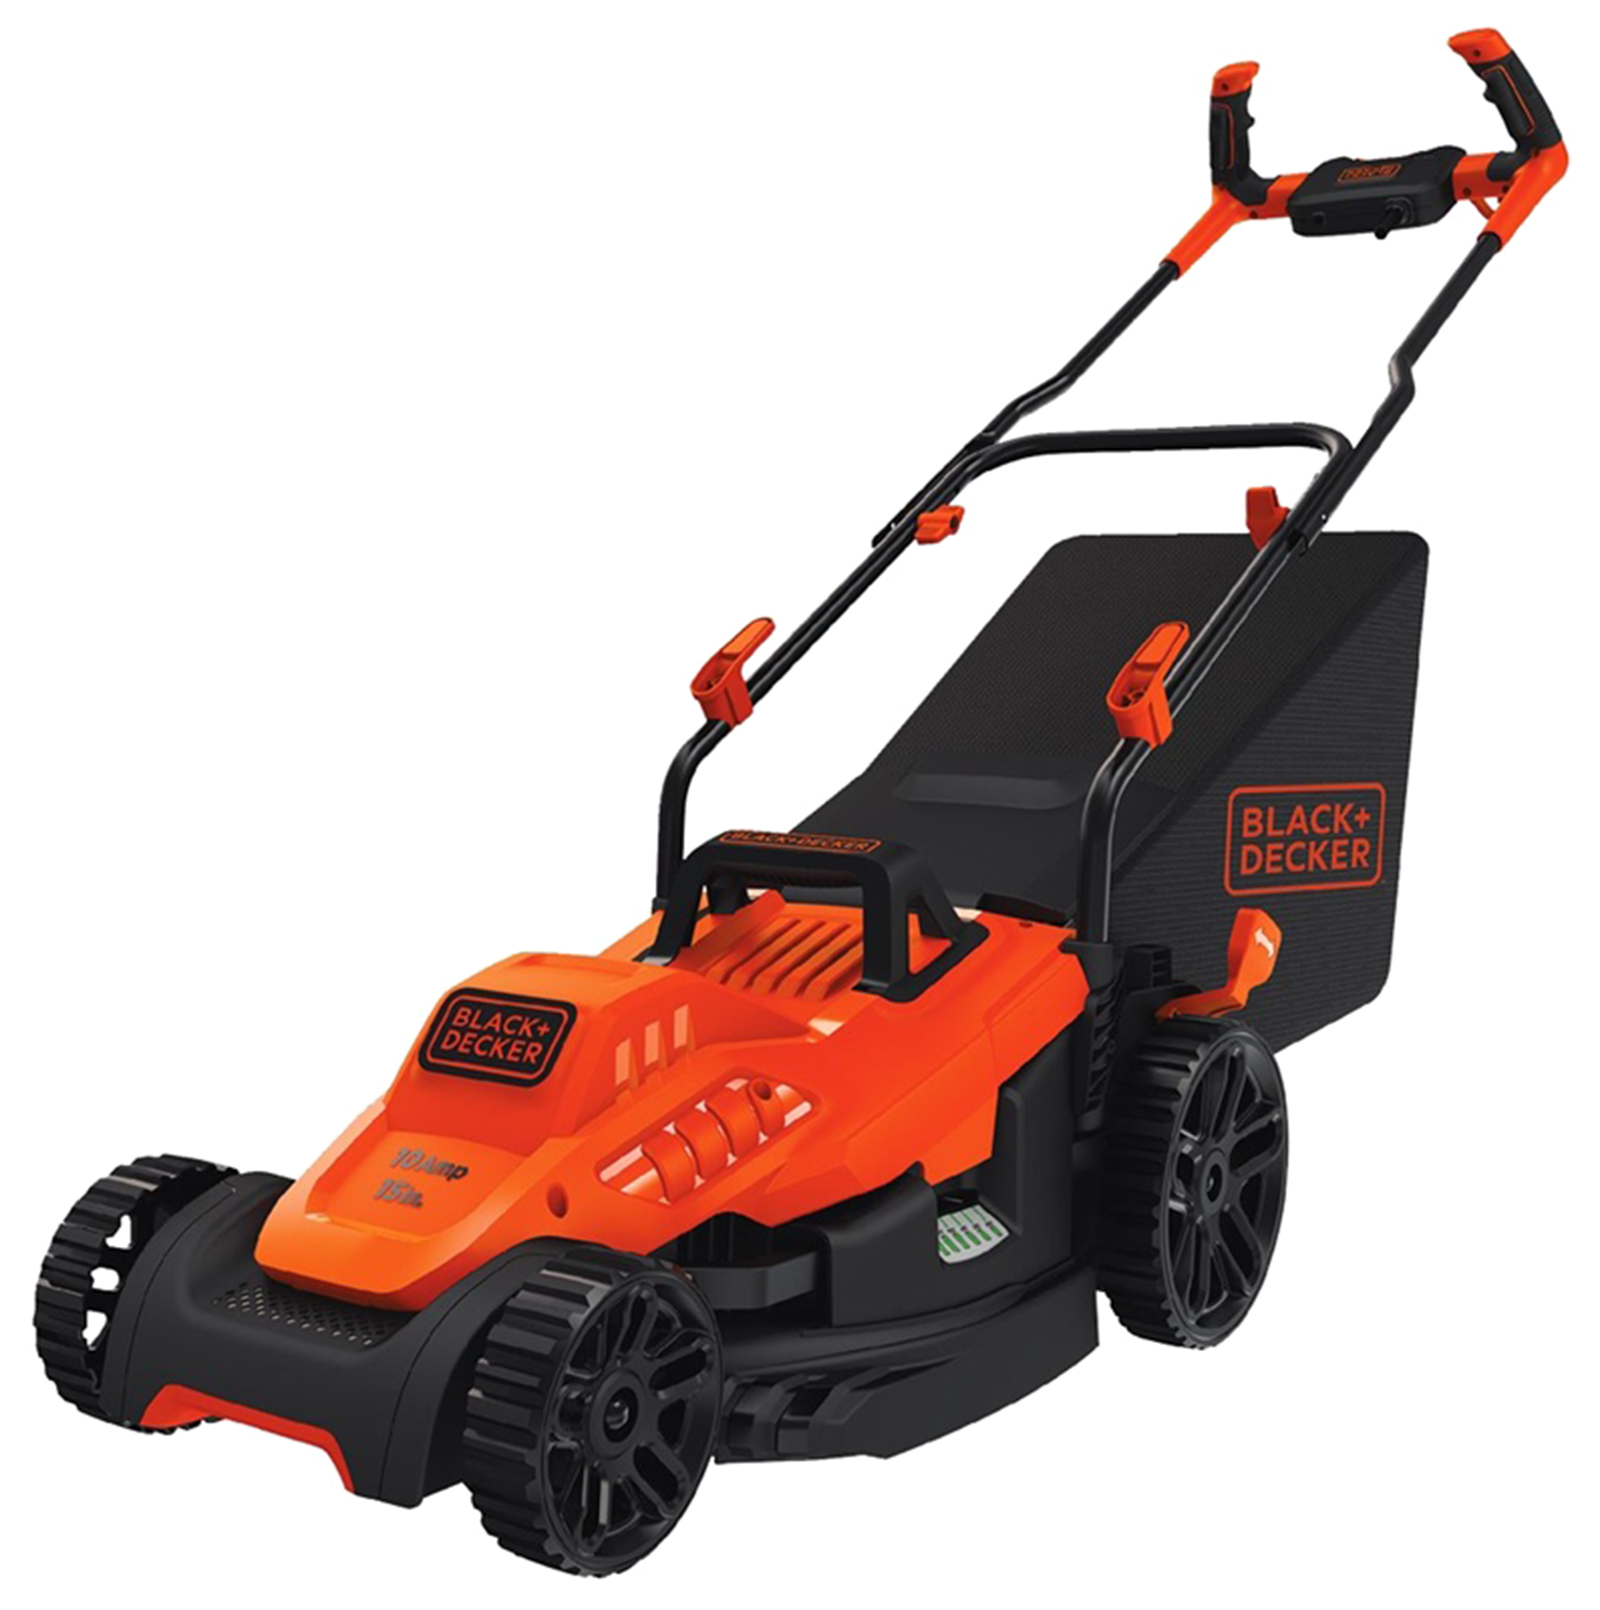 hight resolution of find the best electric lawn mowers from top brands at sears scott s lawn mower wiring diagram black amp decker lawn mower wiring diagram